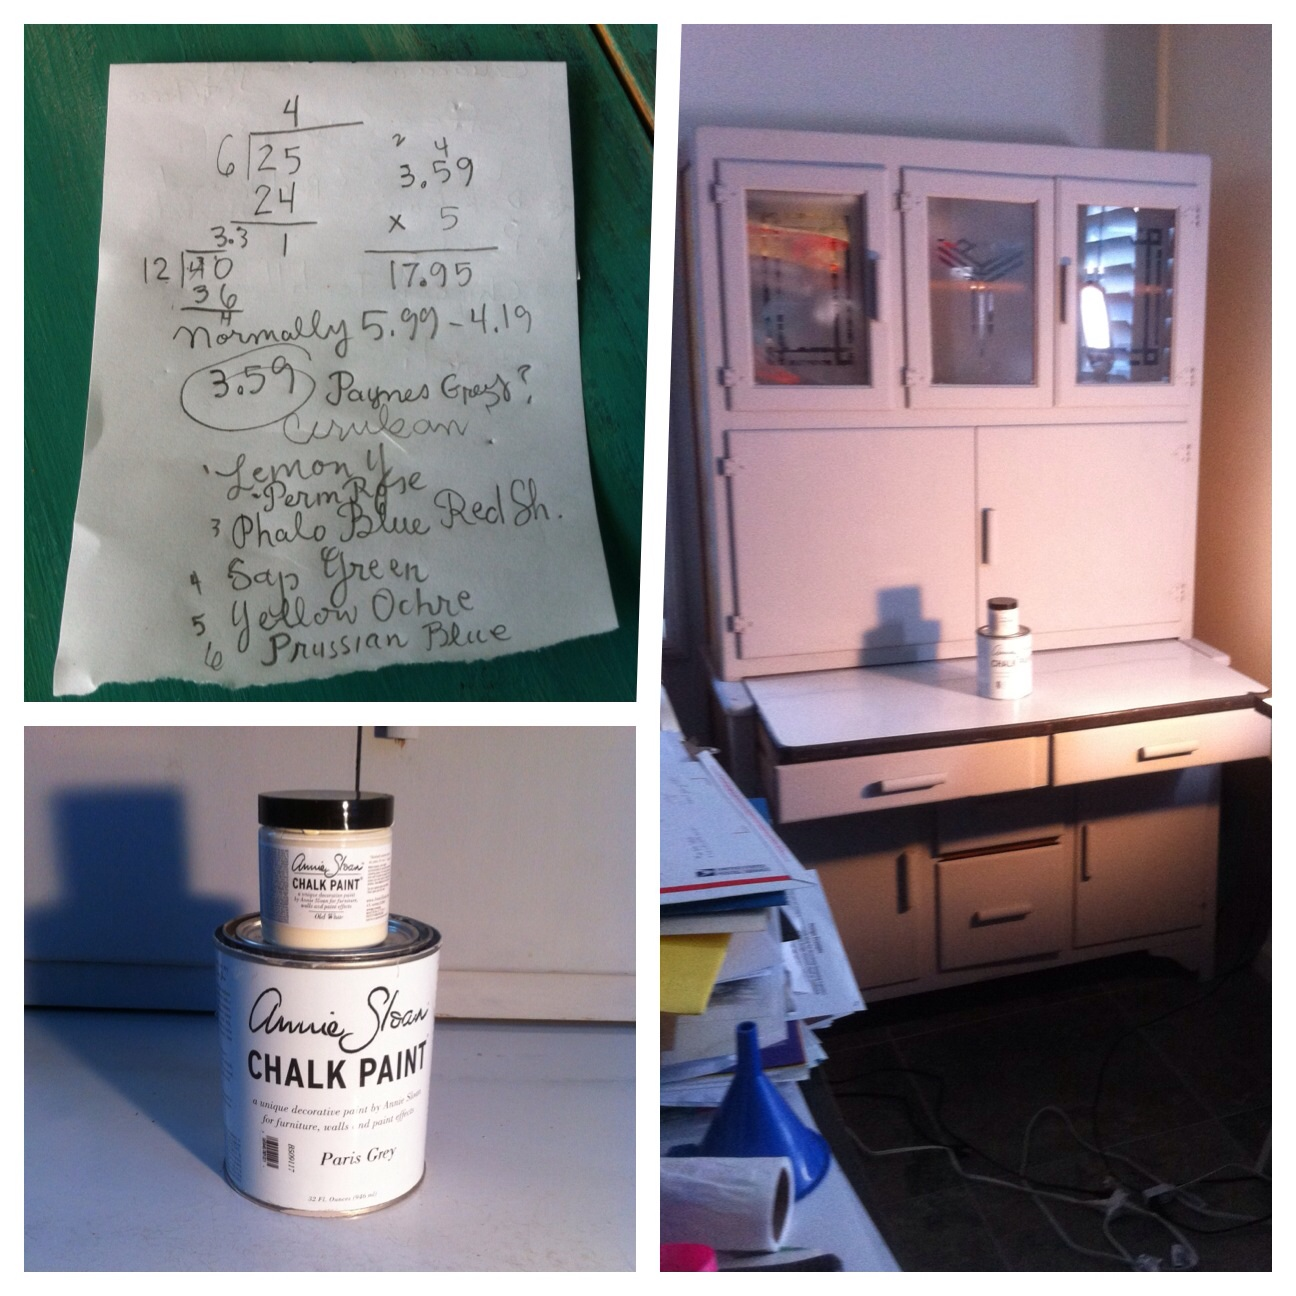 Left to right: My Winsor Newton Marker shopping list, my newly painted hutch in Paris Gray and the culprit, Annie Sloan chalk paint.